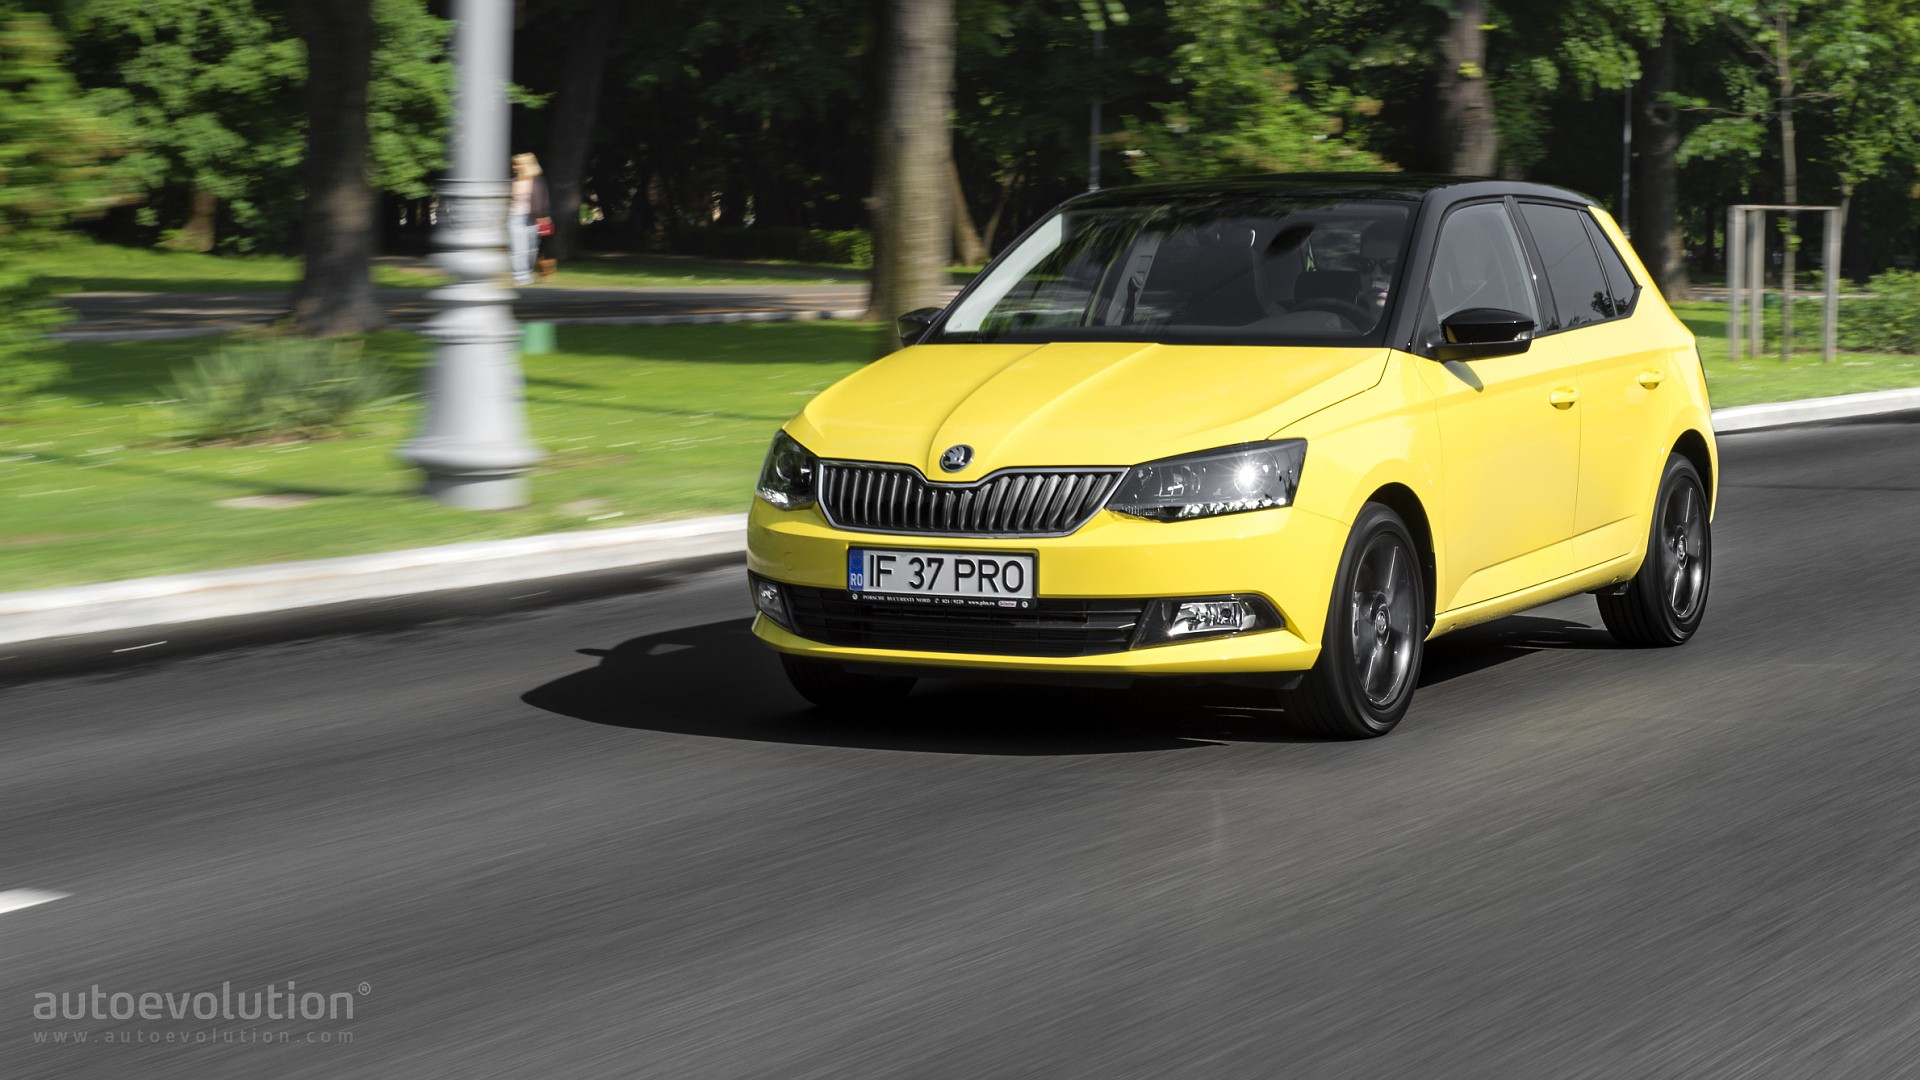 2015 Skoda Fabia Tested: Czech Lemonade - autoevolution